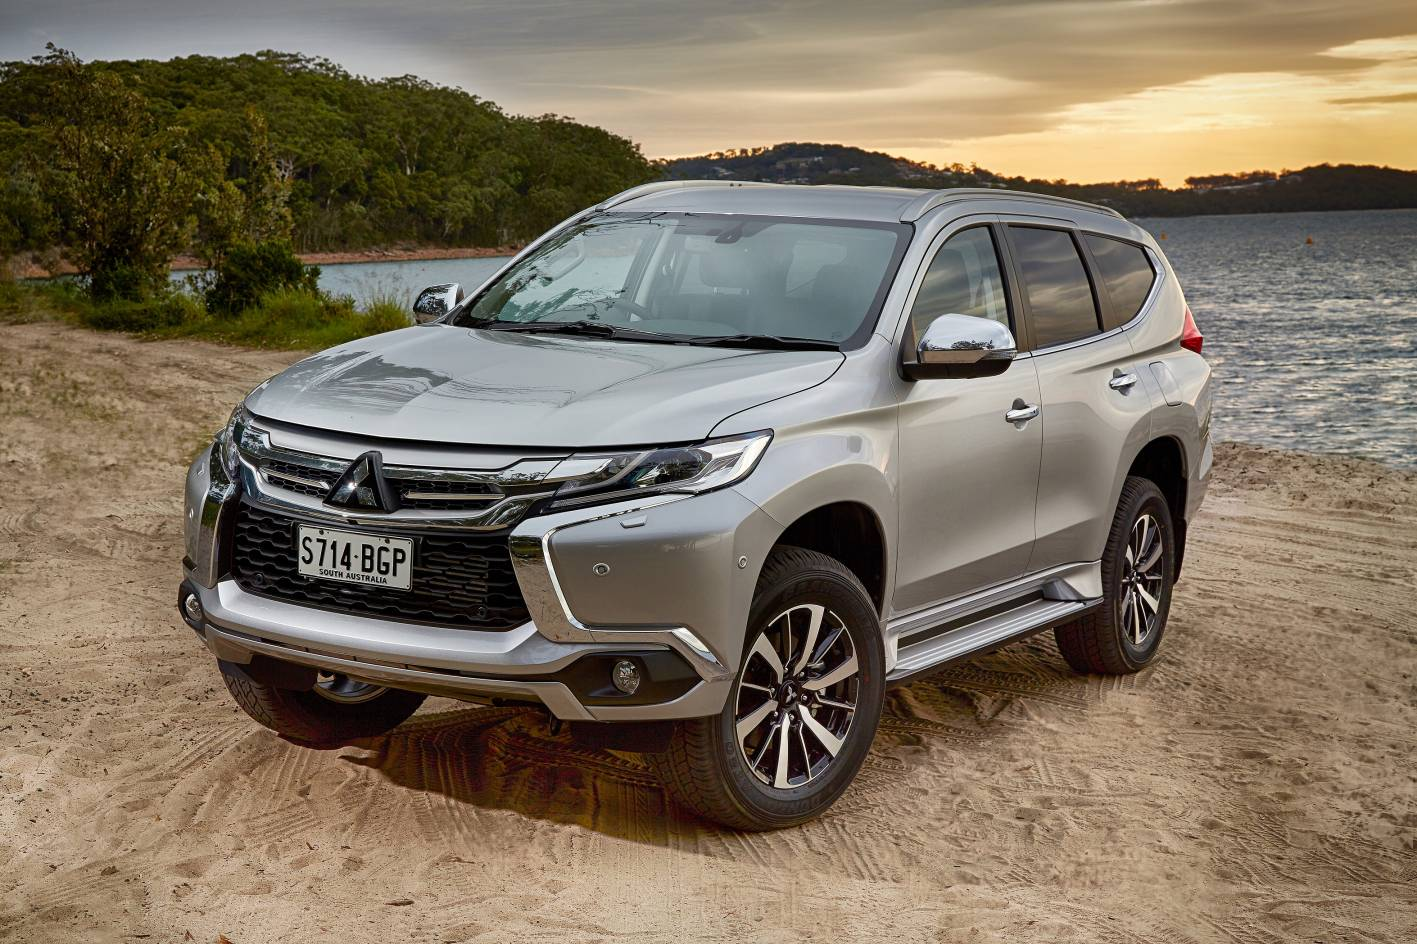 mitsubishi cars news all new pajero sport launched from. Black Bedroom Furniture Sets. Home Design Ideas